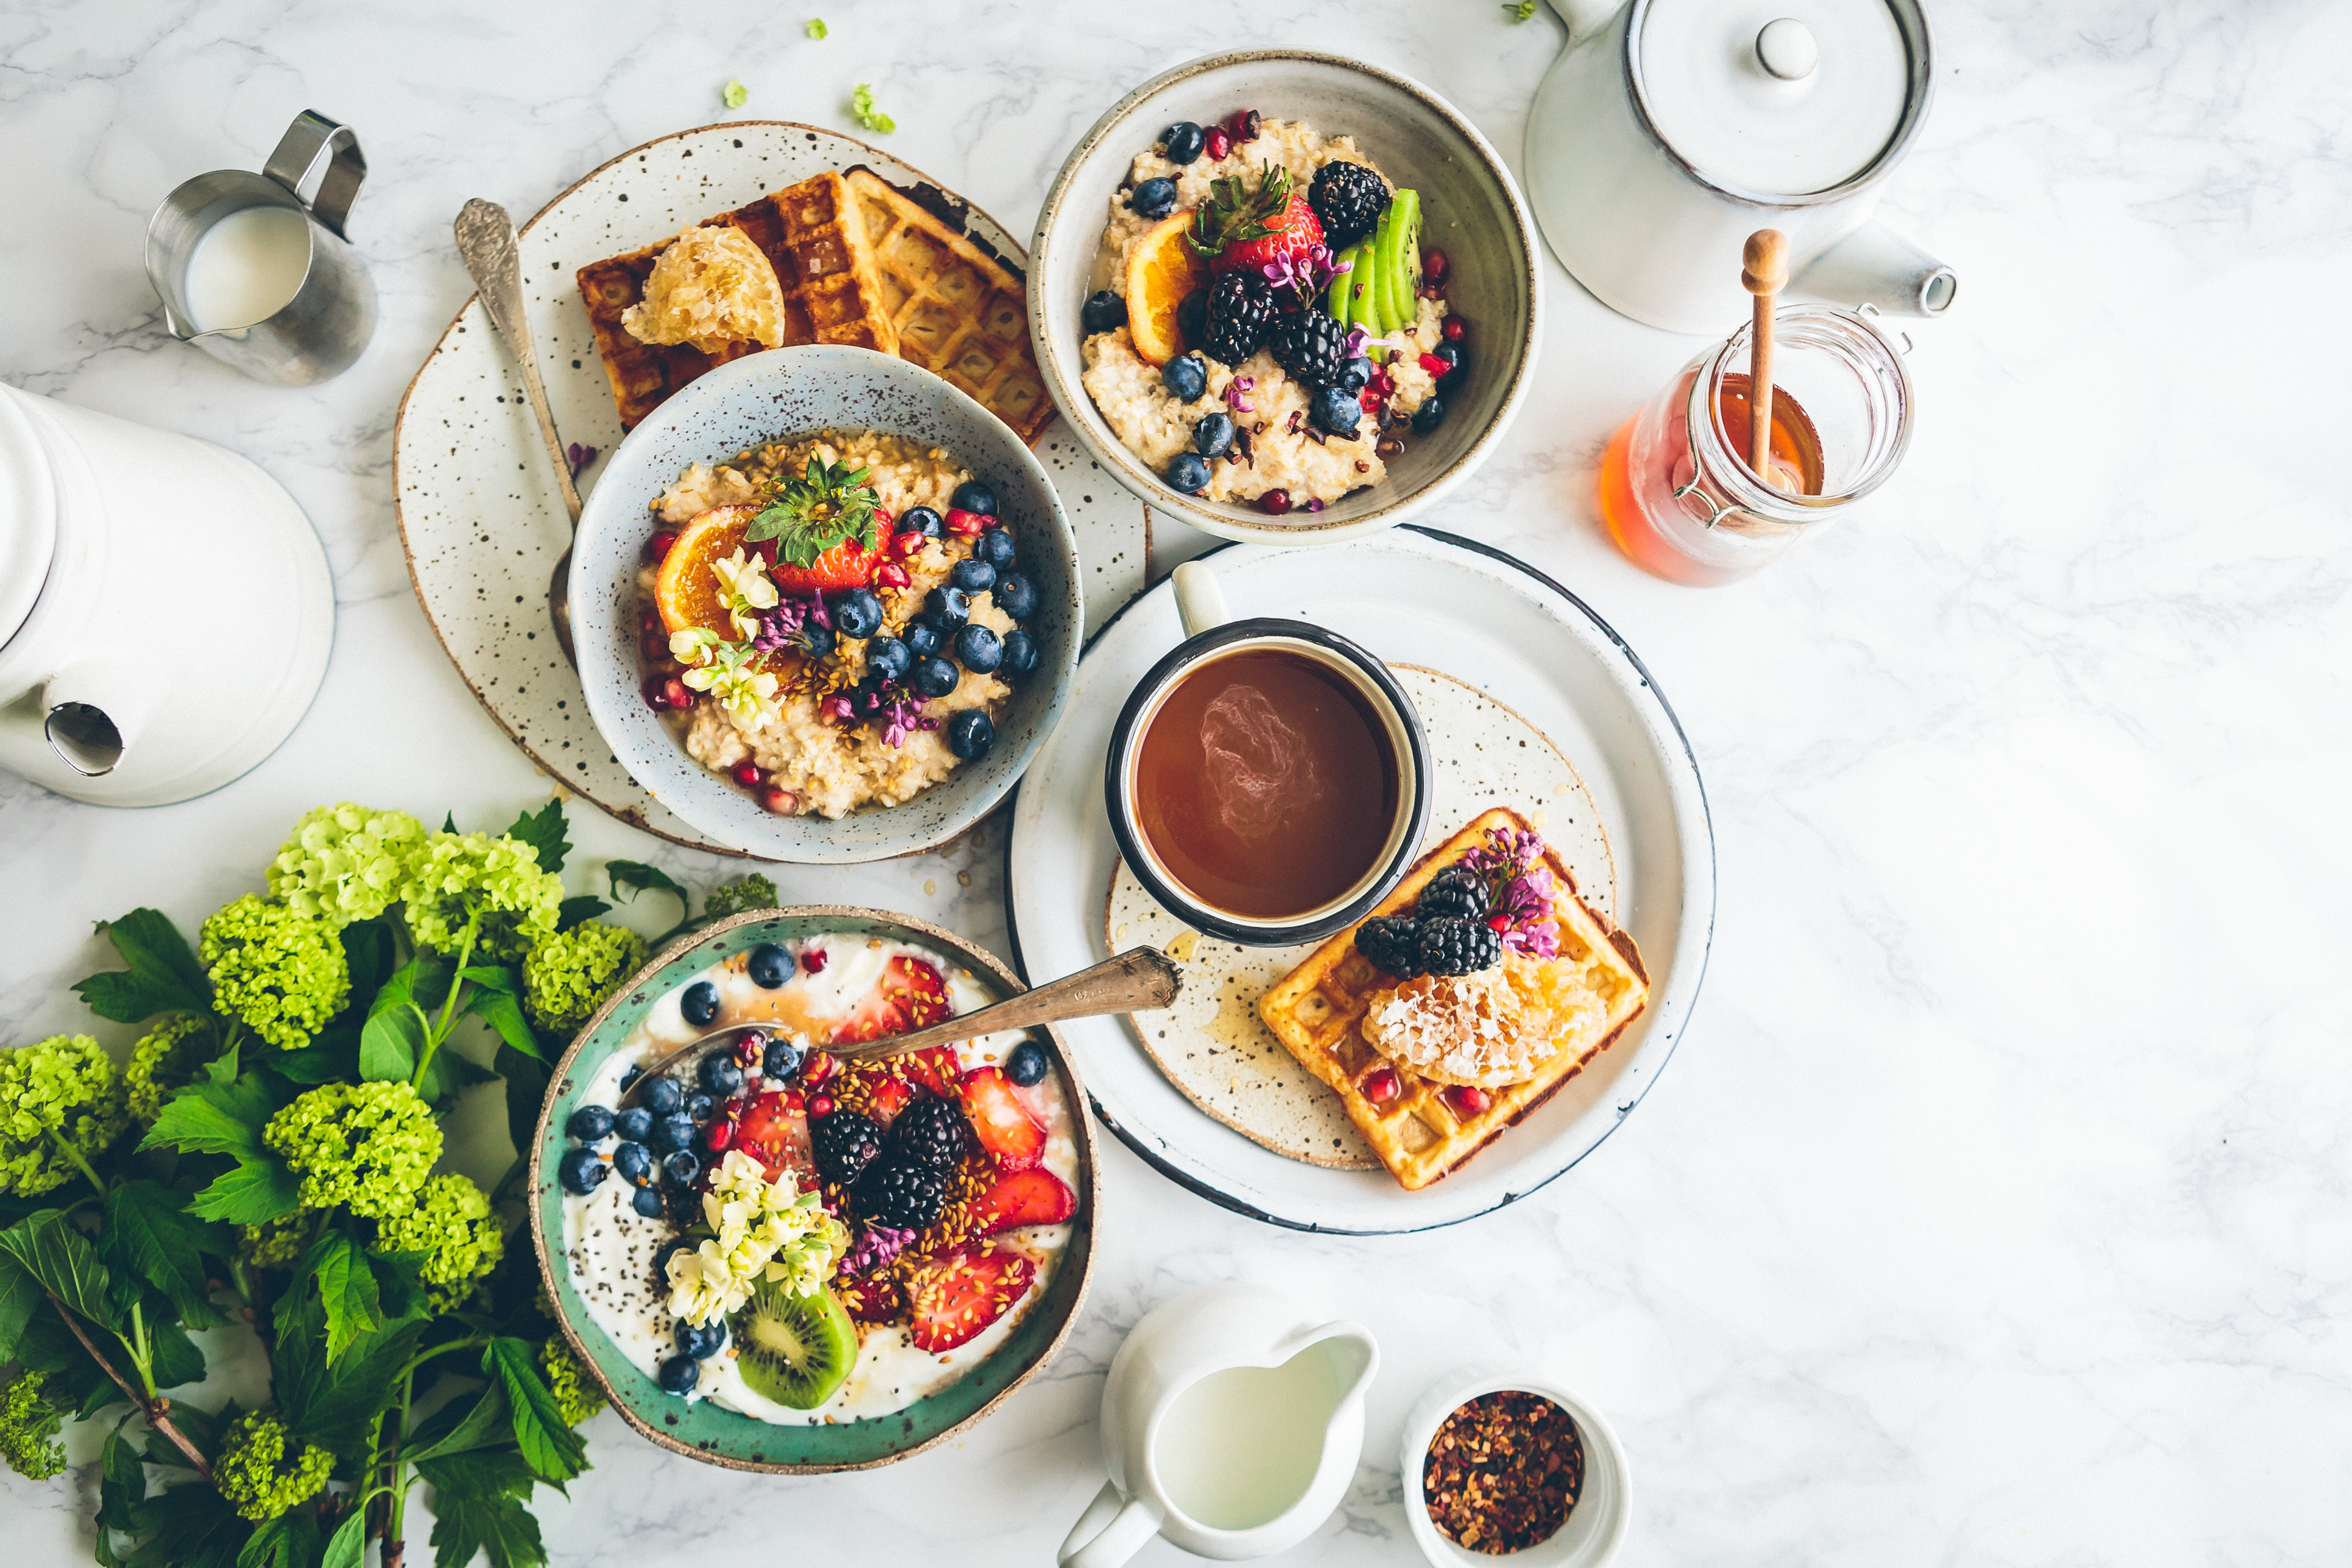 An overhead shot of a waffle, bowls of fruit oatmeal and a cup of coffee